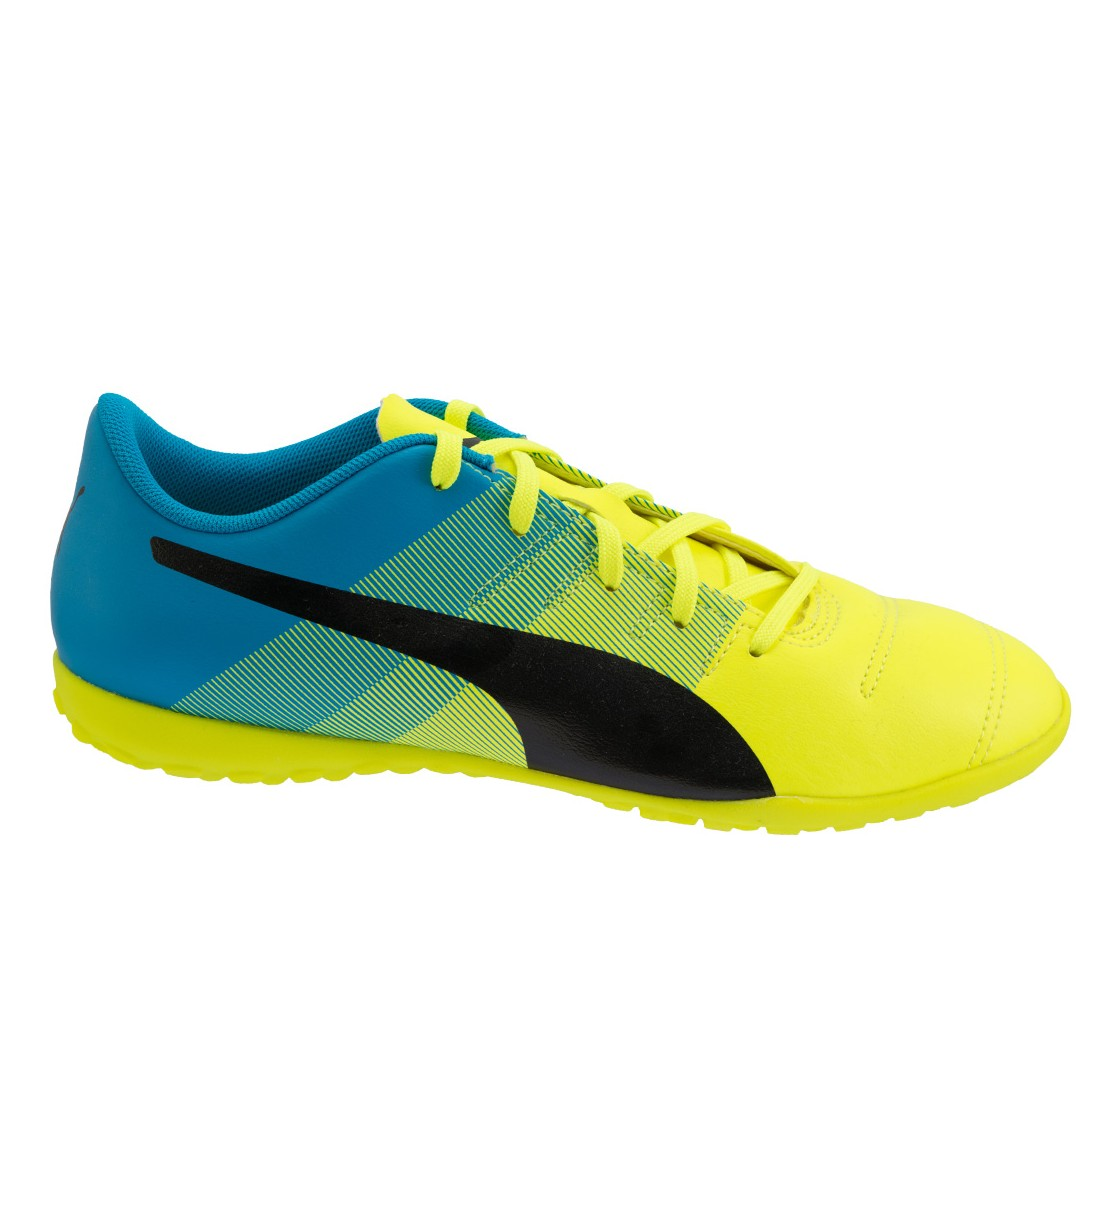 Puma evoPOWER 4.3 TT Jr